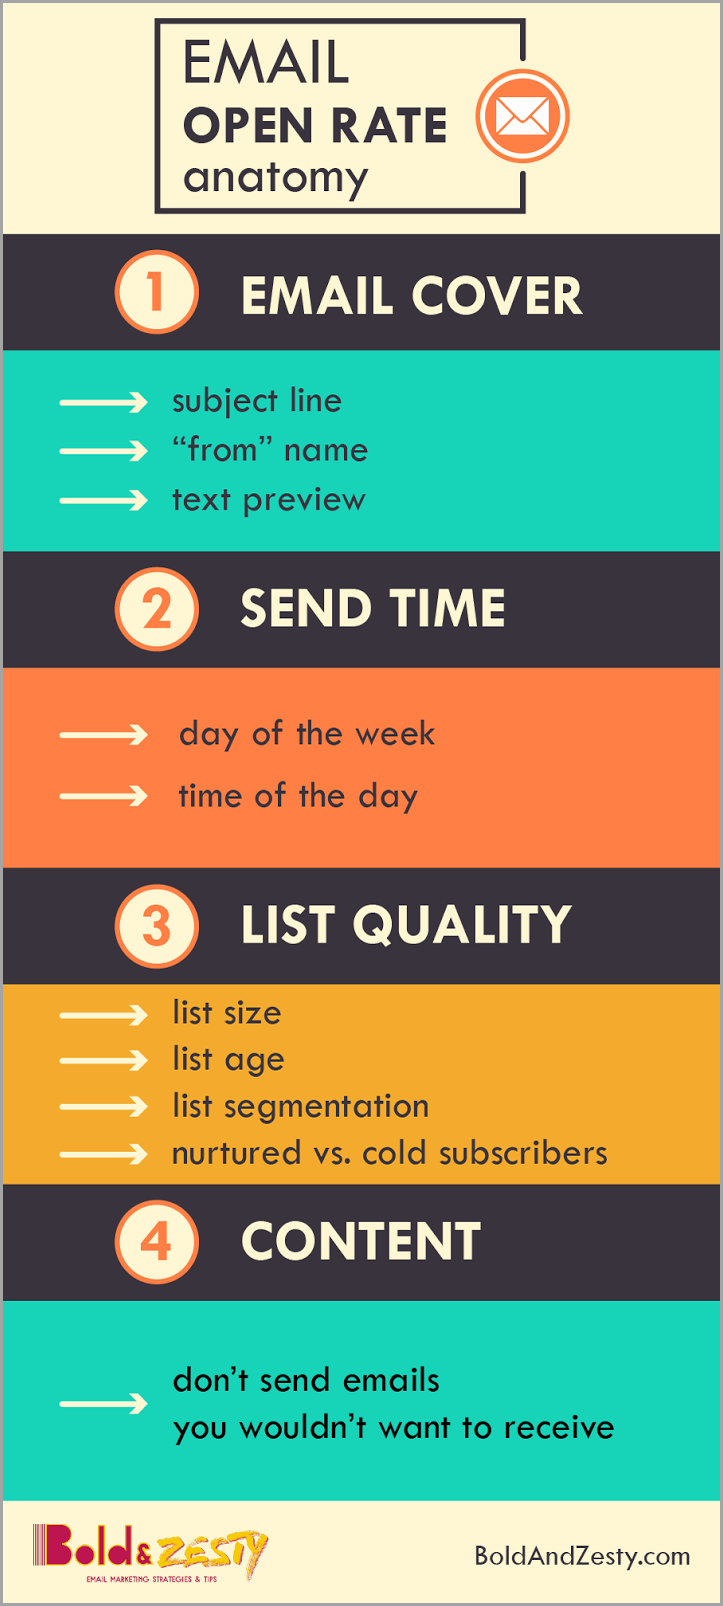 email open rate anatomy for email marketing manager